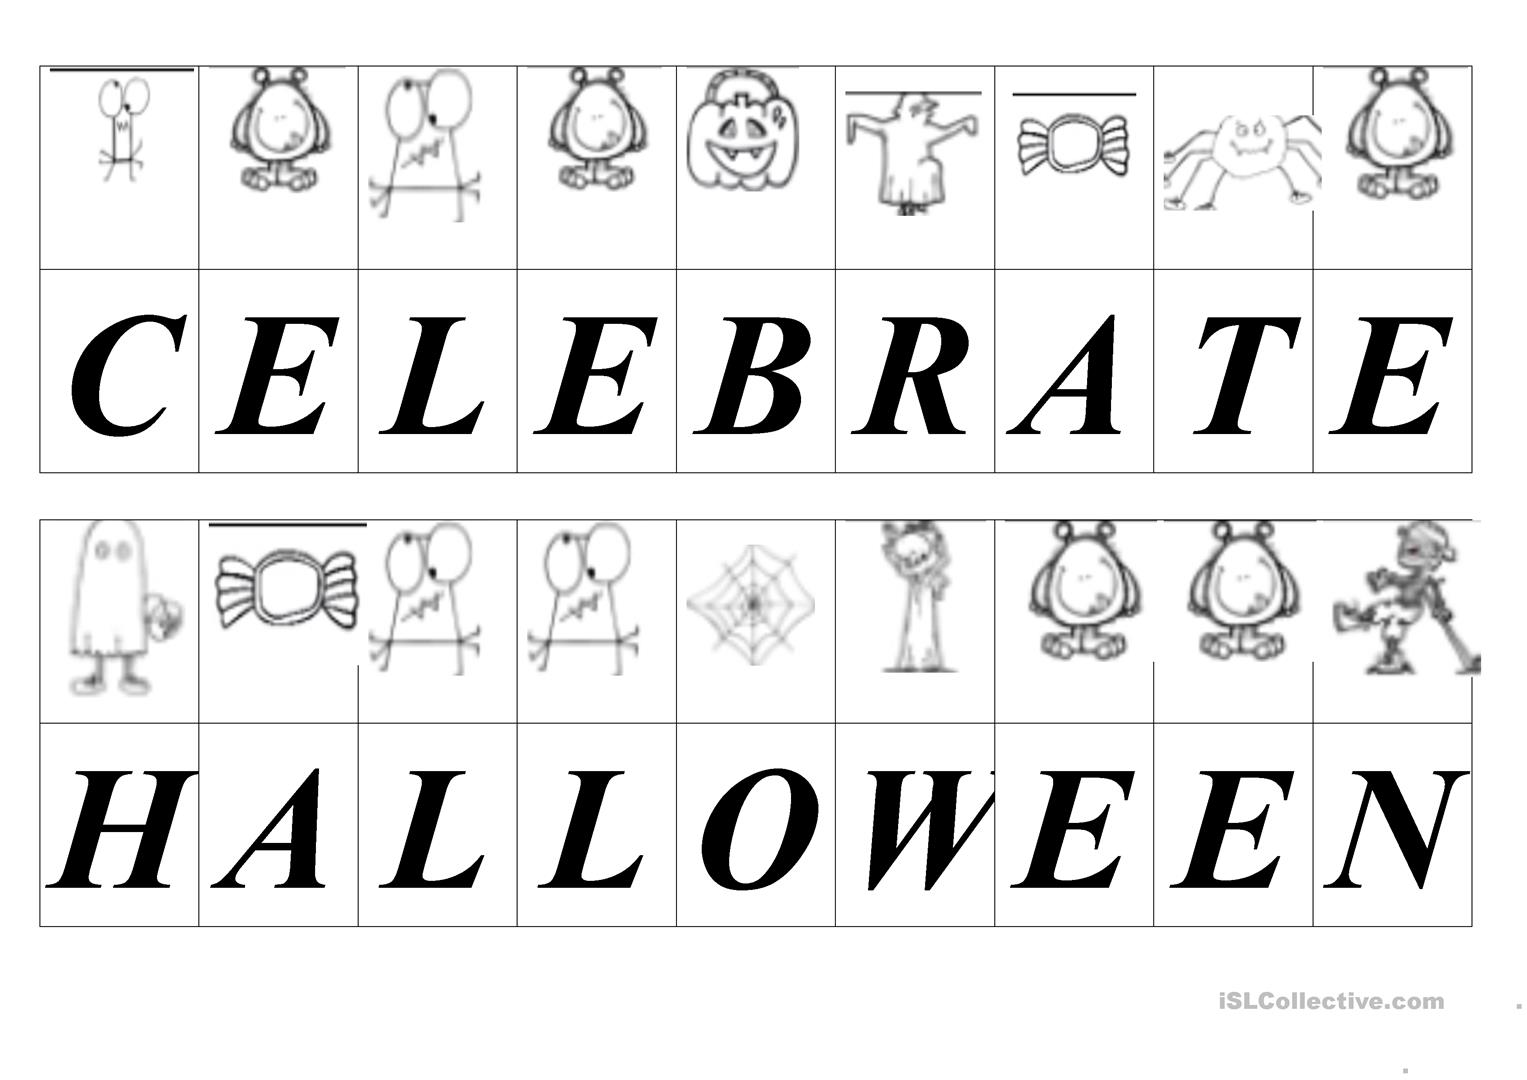 Halloween Secret Message Decoding